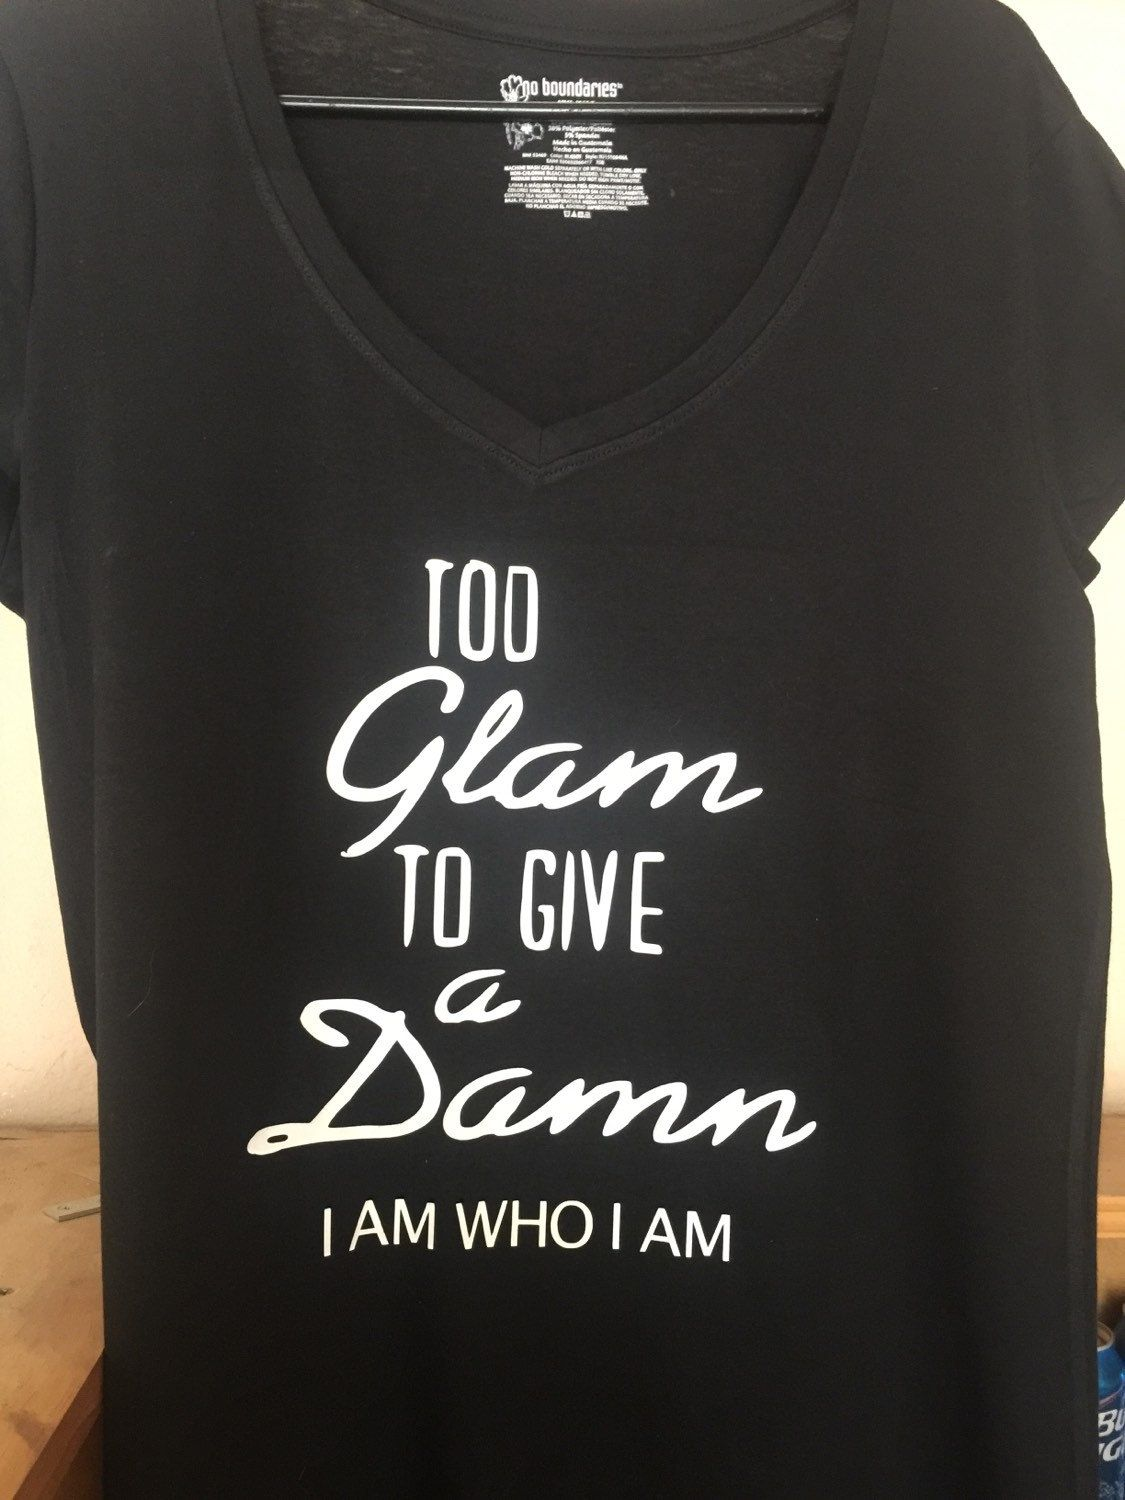 22.00 too glam to give a damn tshirt or tank top by Jkdezign on Etsy